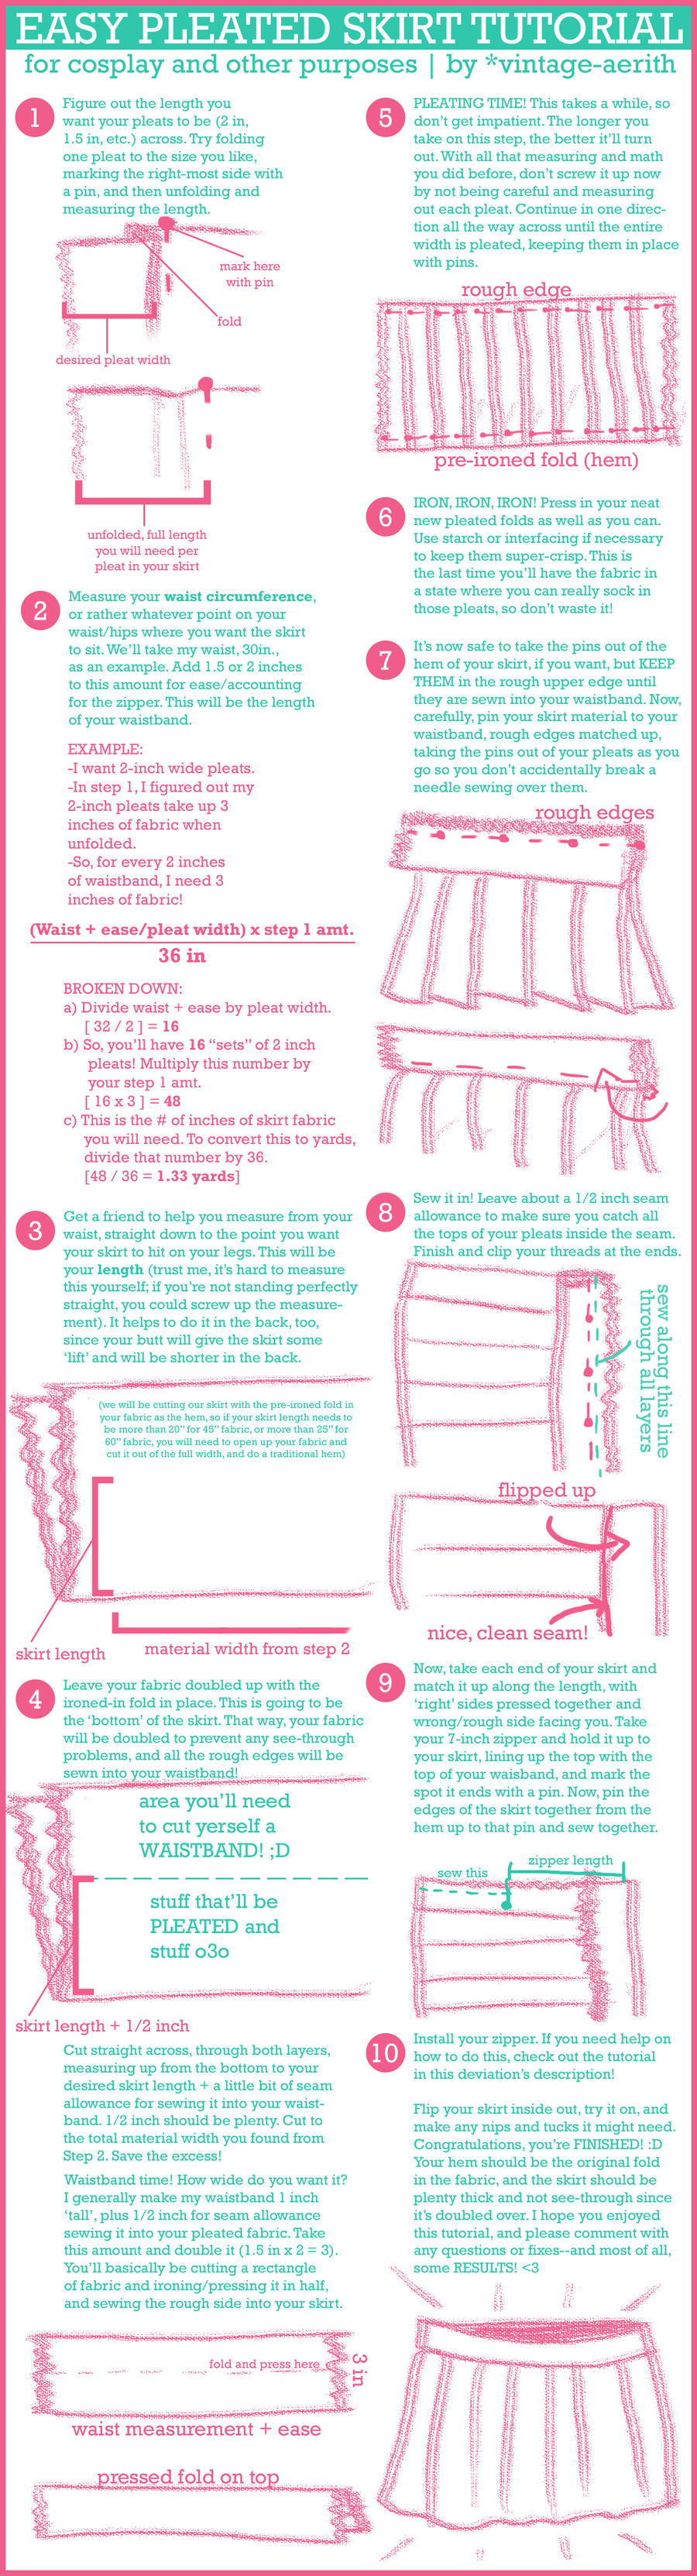 Easy Pleated Skirt Tutorial by cafe-lalonde on DeviantArt